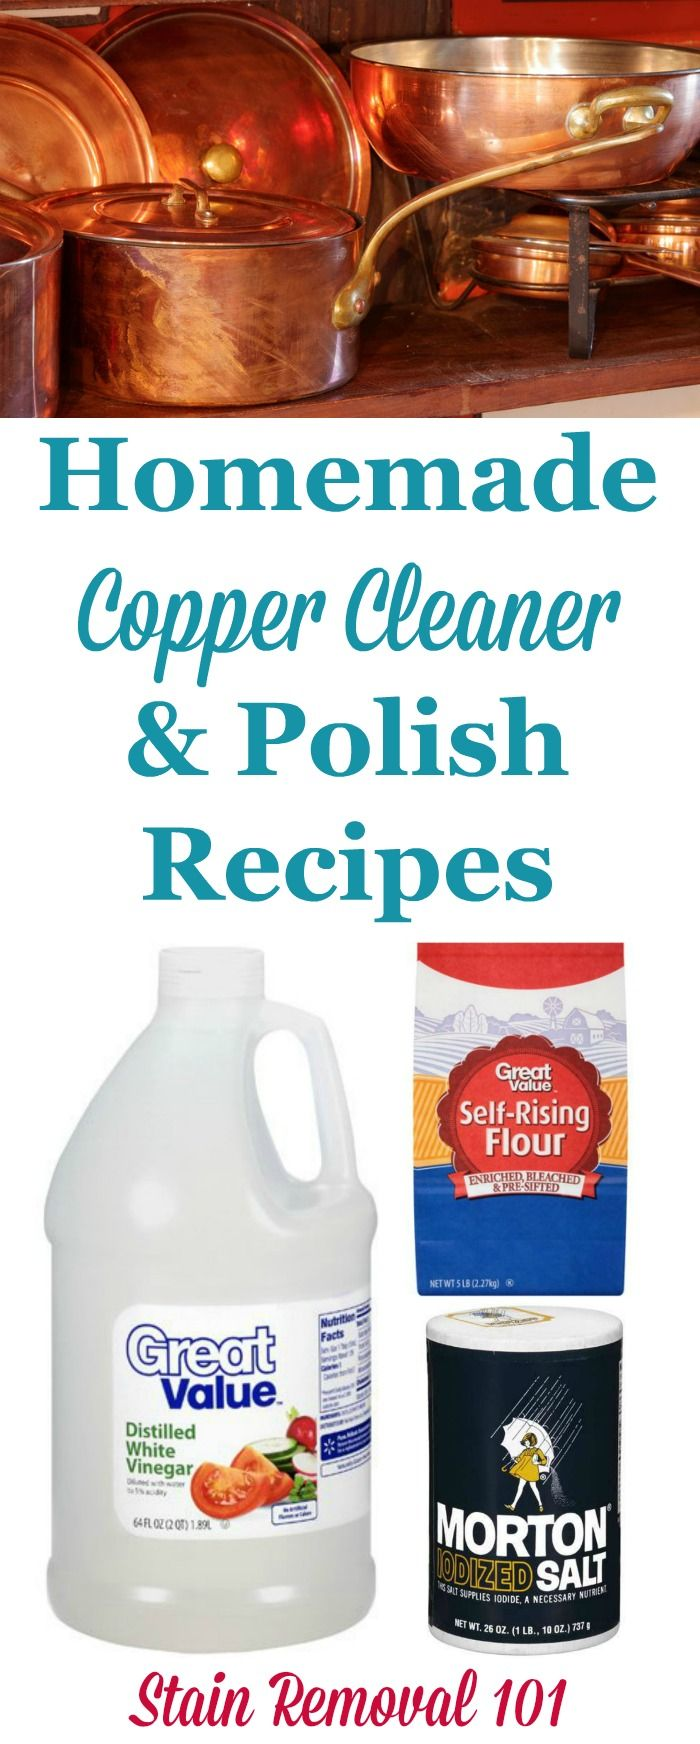 homemade copper cleaner polish recipes homemade cleaning products copper cleaner diy. Black Bedroom Furniture Sets. Home Design Ideas